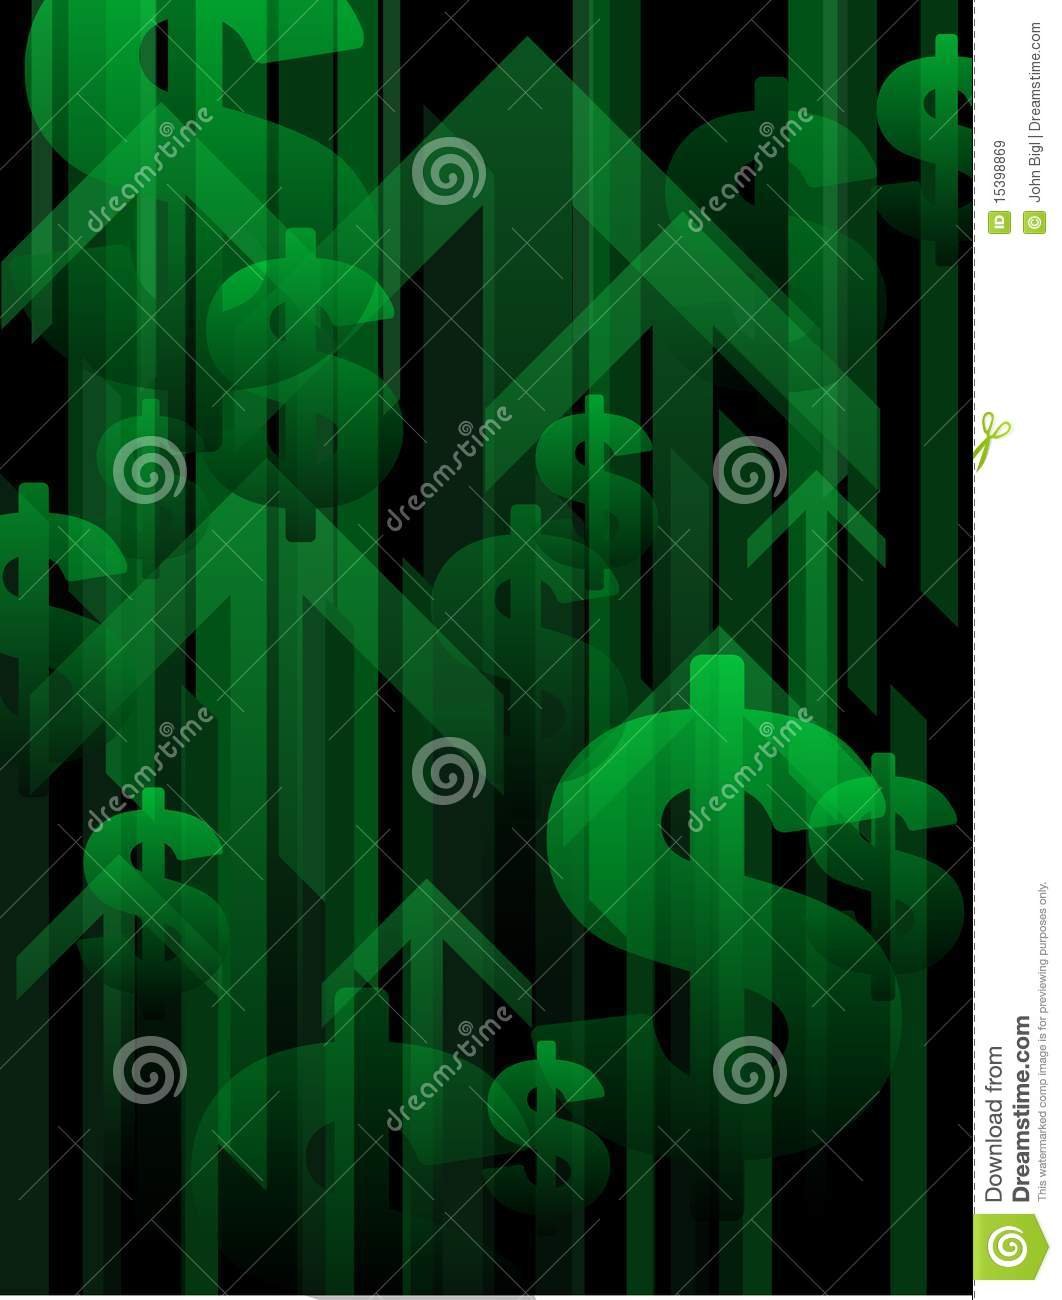 Finance Background: Financial Recovery Background Royalty Free Stock Images